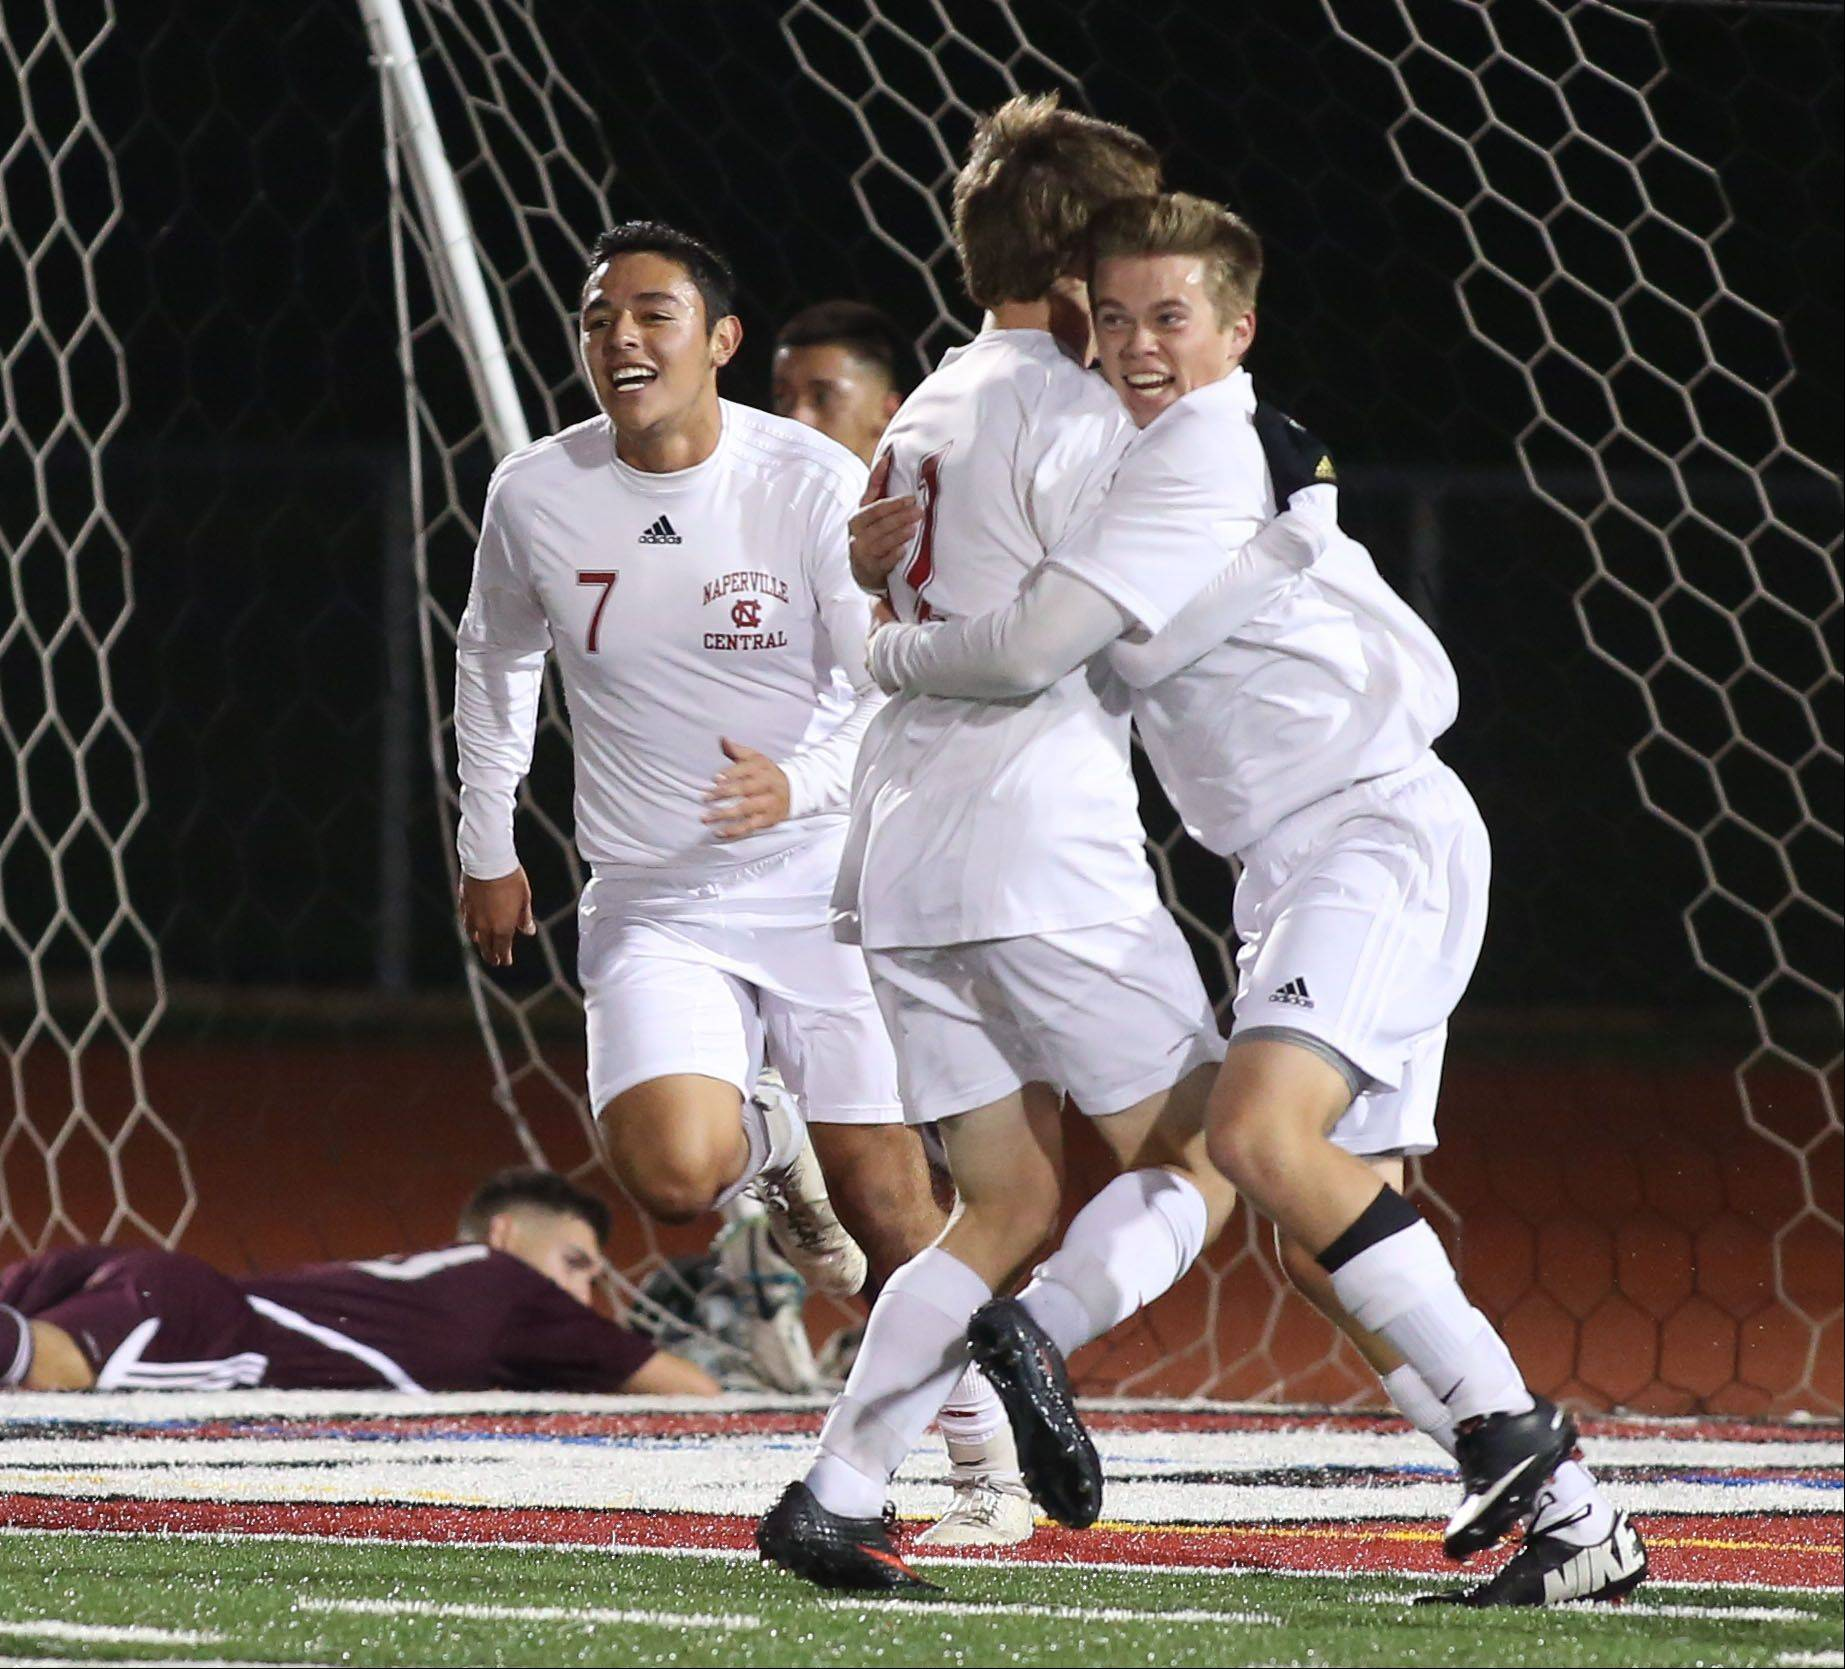 Naperville Central soccer players celebrate during Tuesday's Class 3A supersectional match in Romeoville.